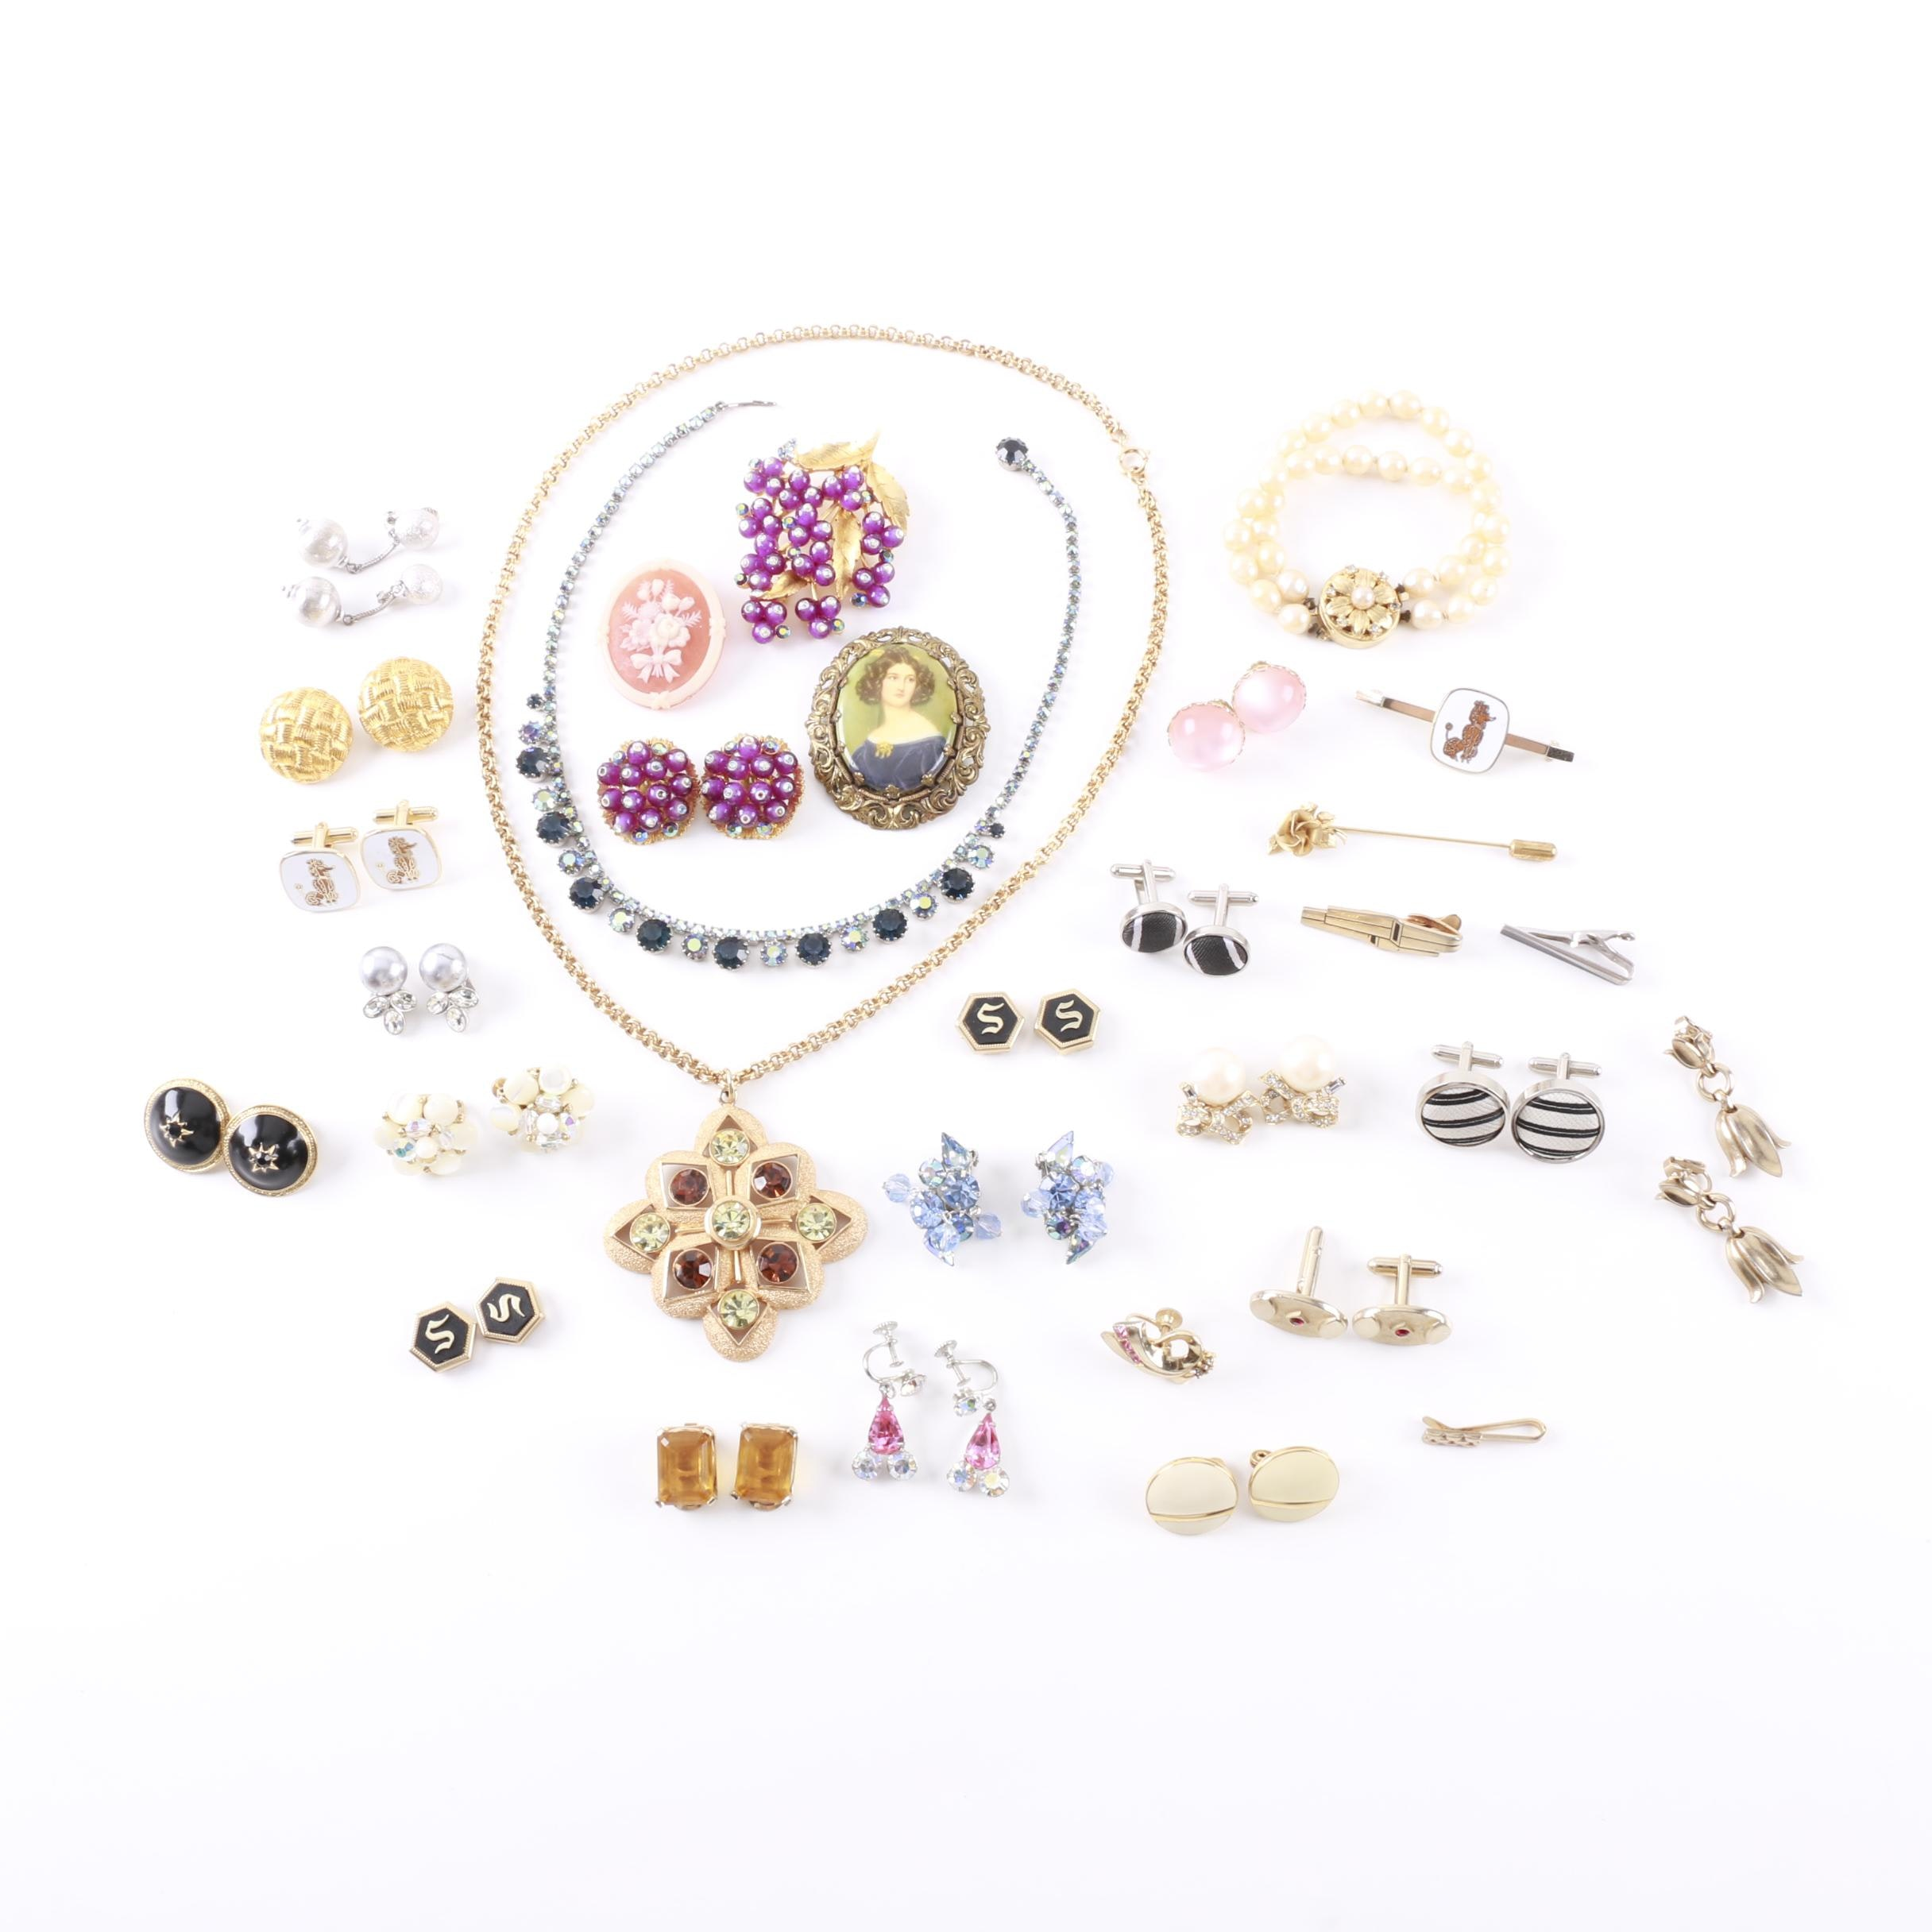 Assortment of Gold Tone Costume Jewelry